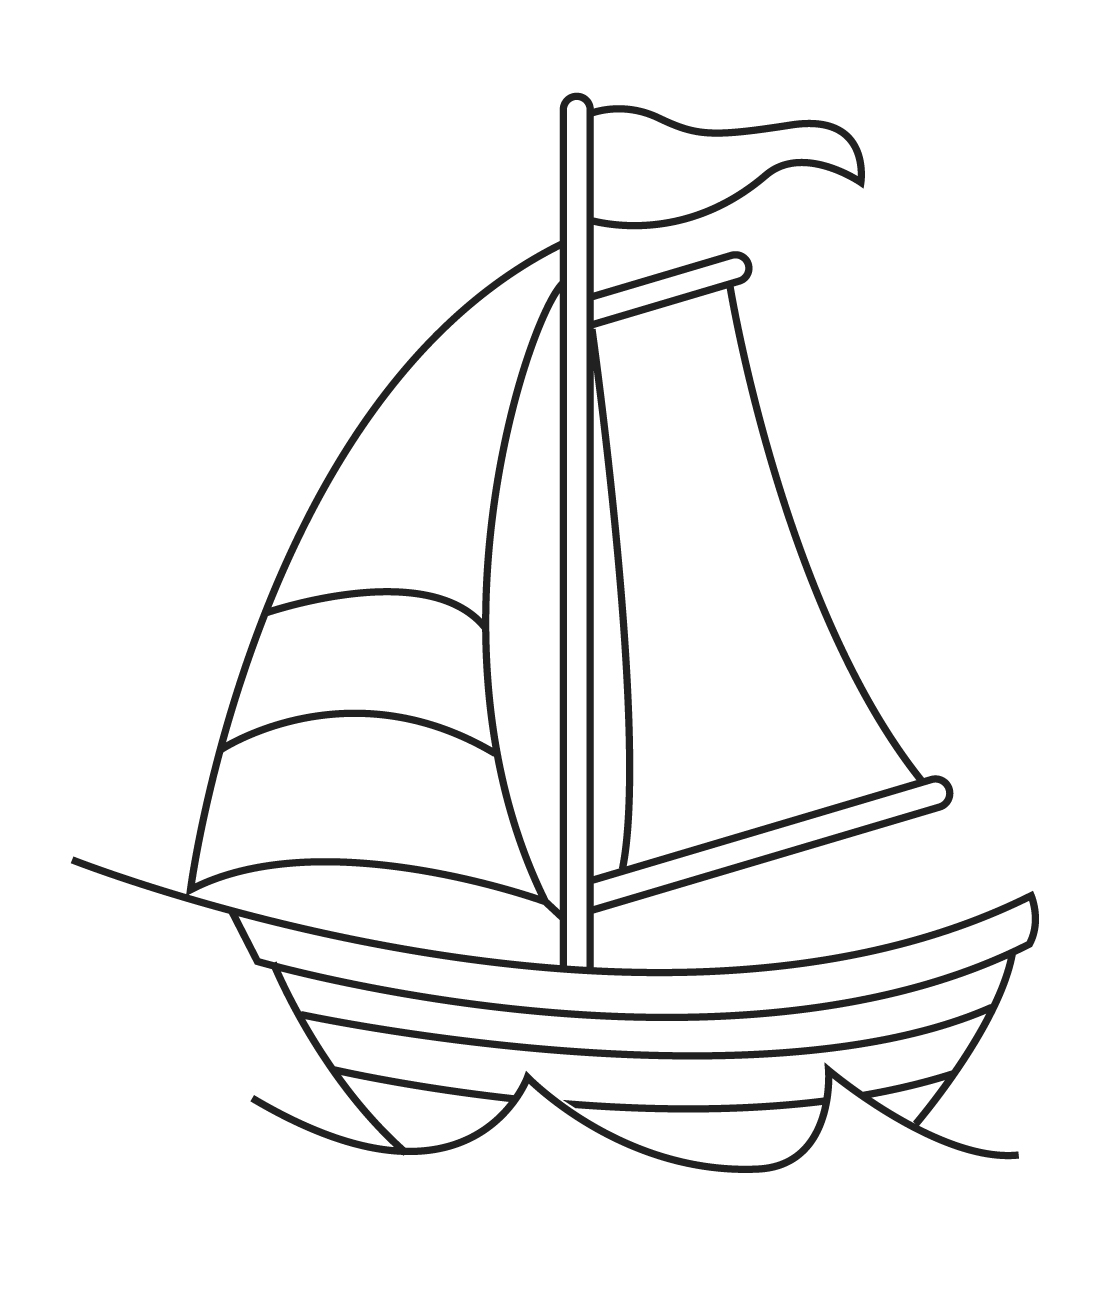 Boat Template For Cake Ideas and Designs